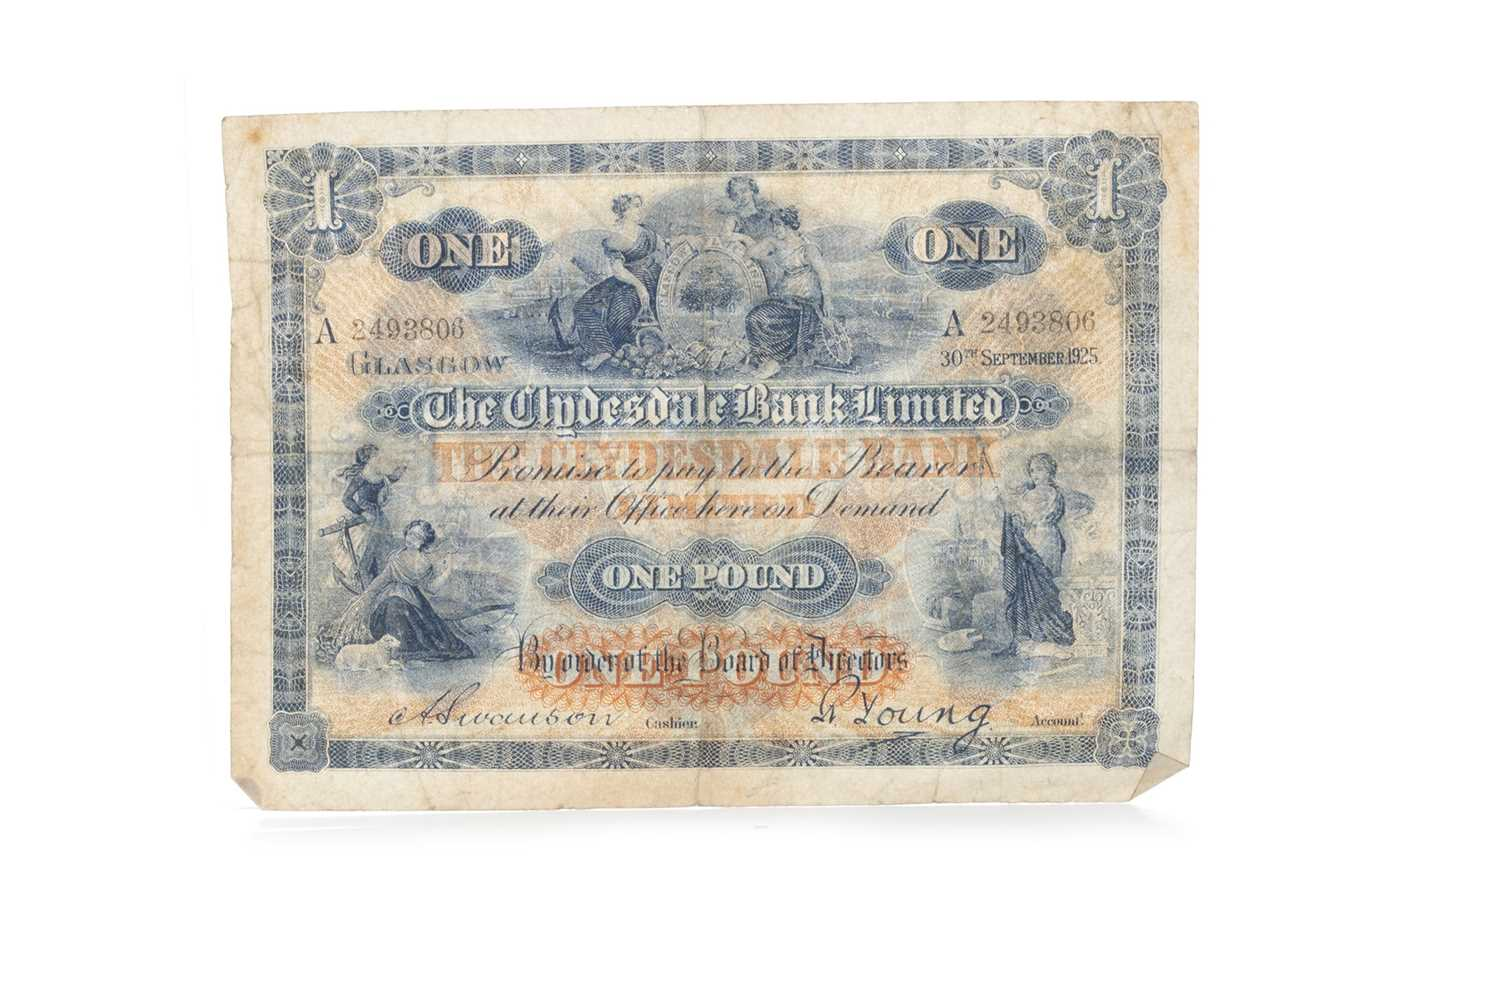 Lot 4-THE CLYDESDALE BANK LIMITED ONE POUND £1 NOTE